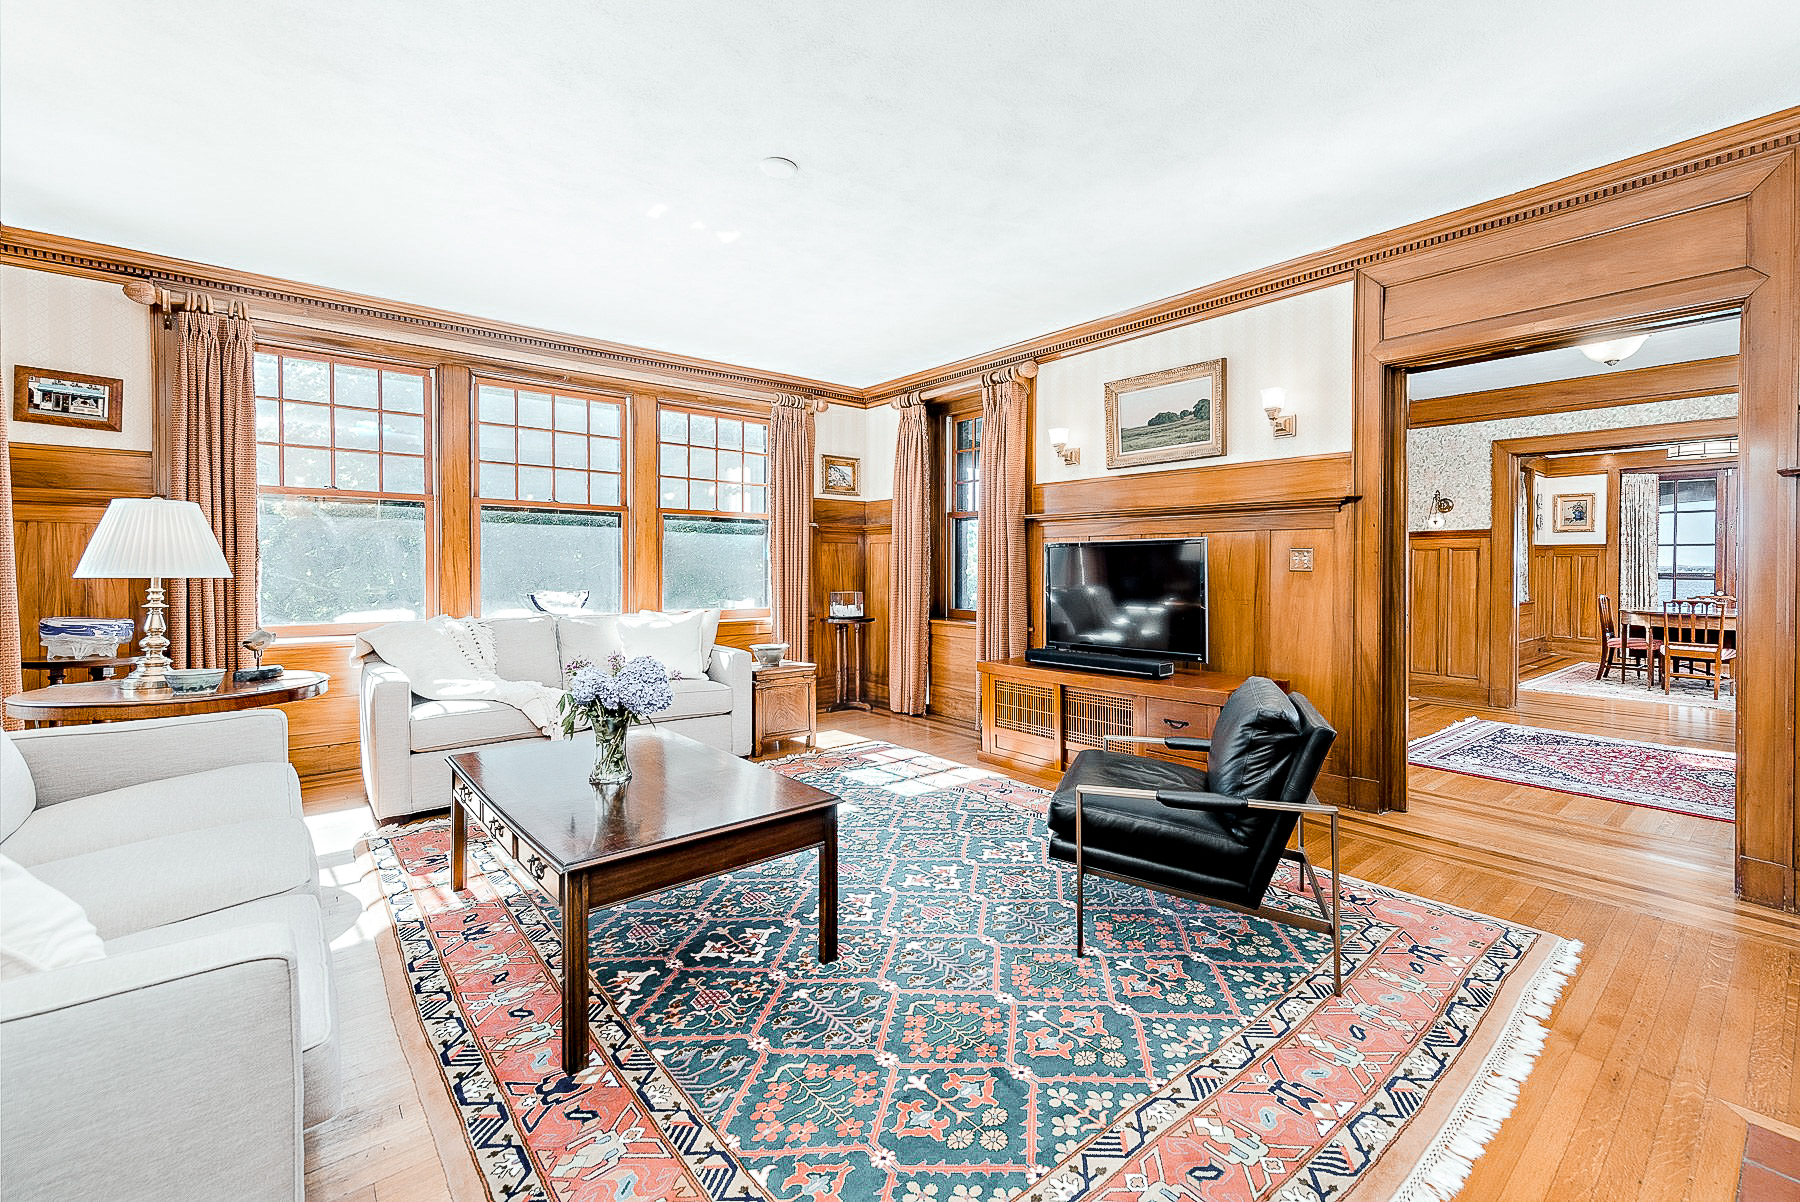 Luxe_and_Livable_Interior_Design_Blog_by_Maloney_Interiors_Mott_and_Chase_Realty_11.jpg